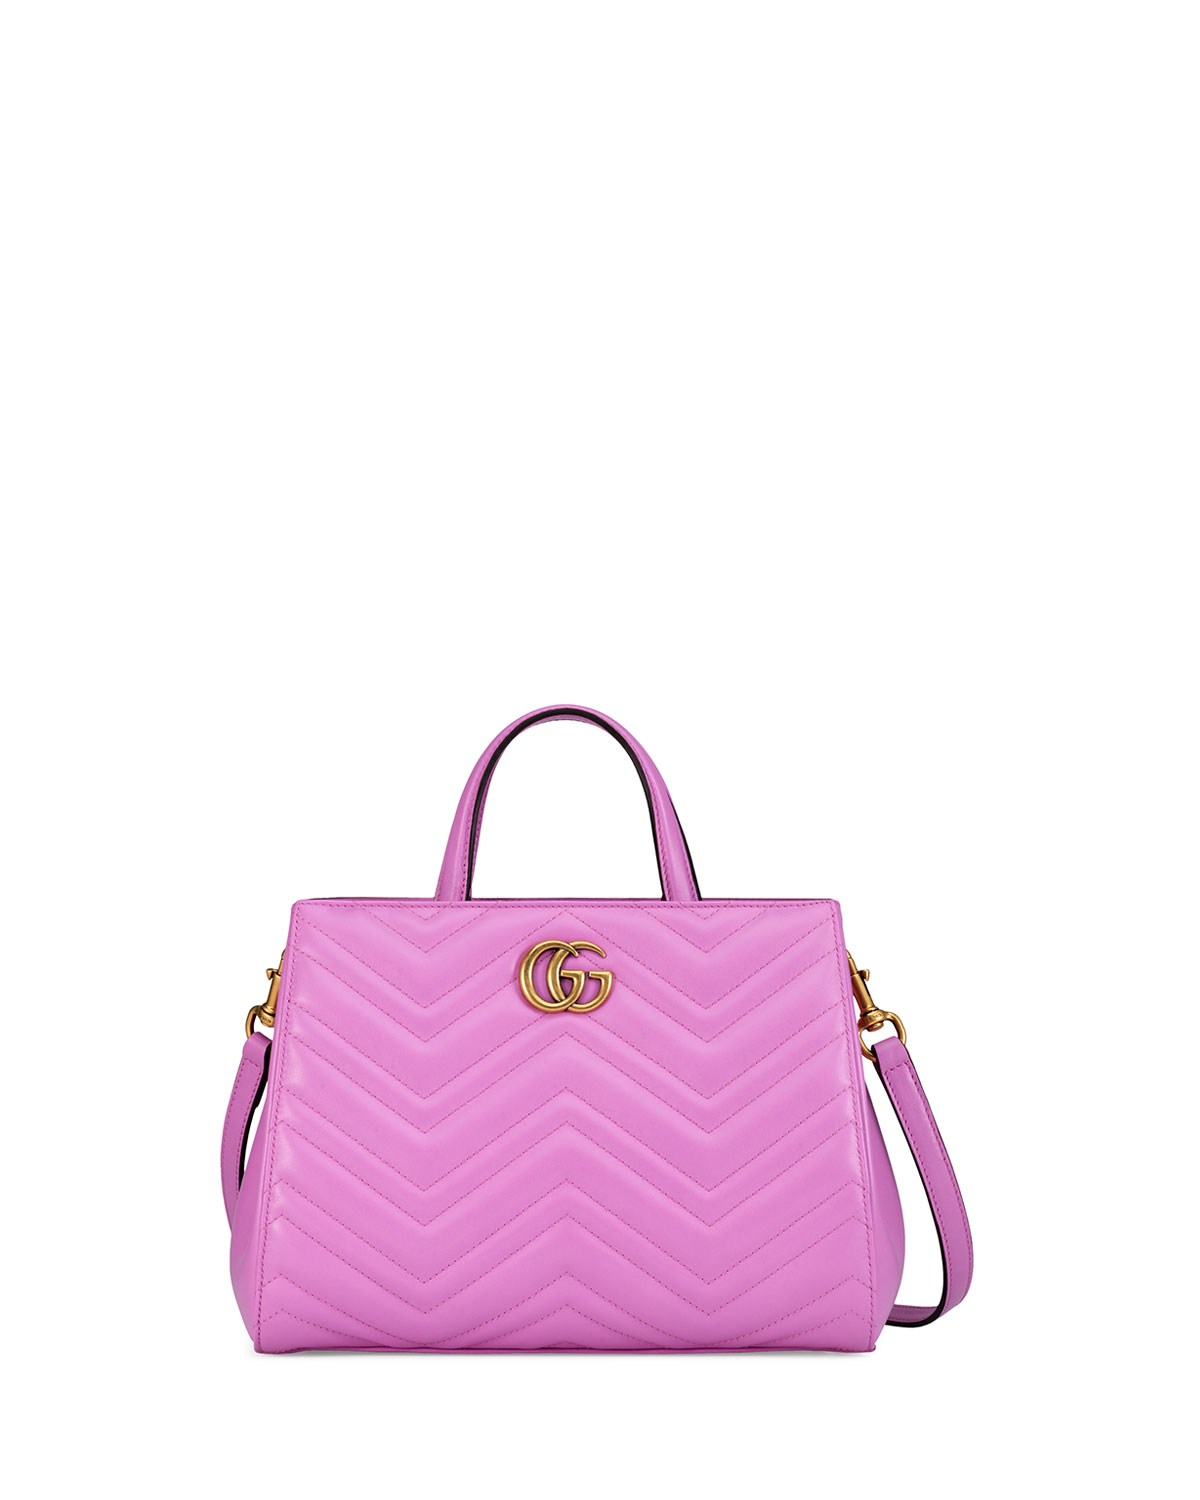 51963cbd9b136 Gucci GG Marmont Small Matelassé Top-Handle Bag